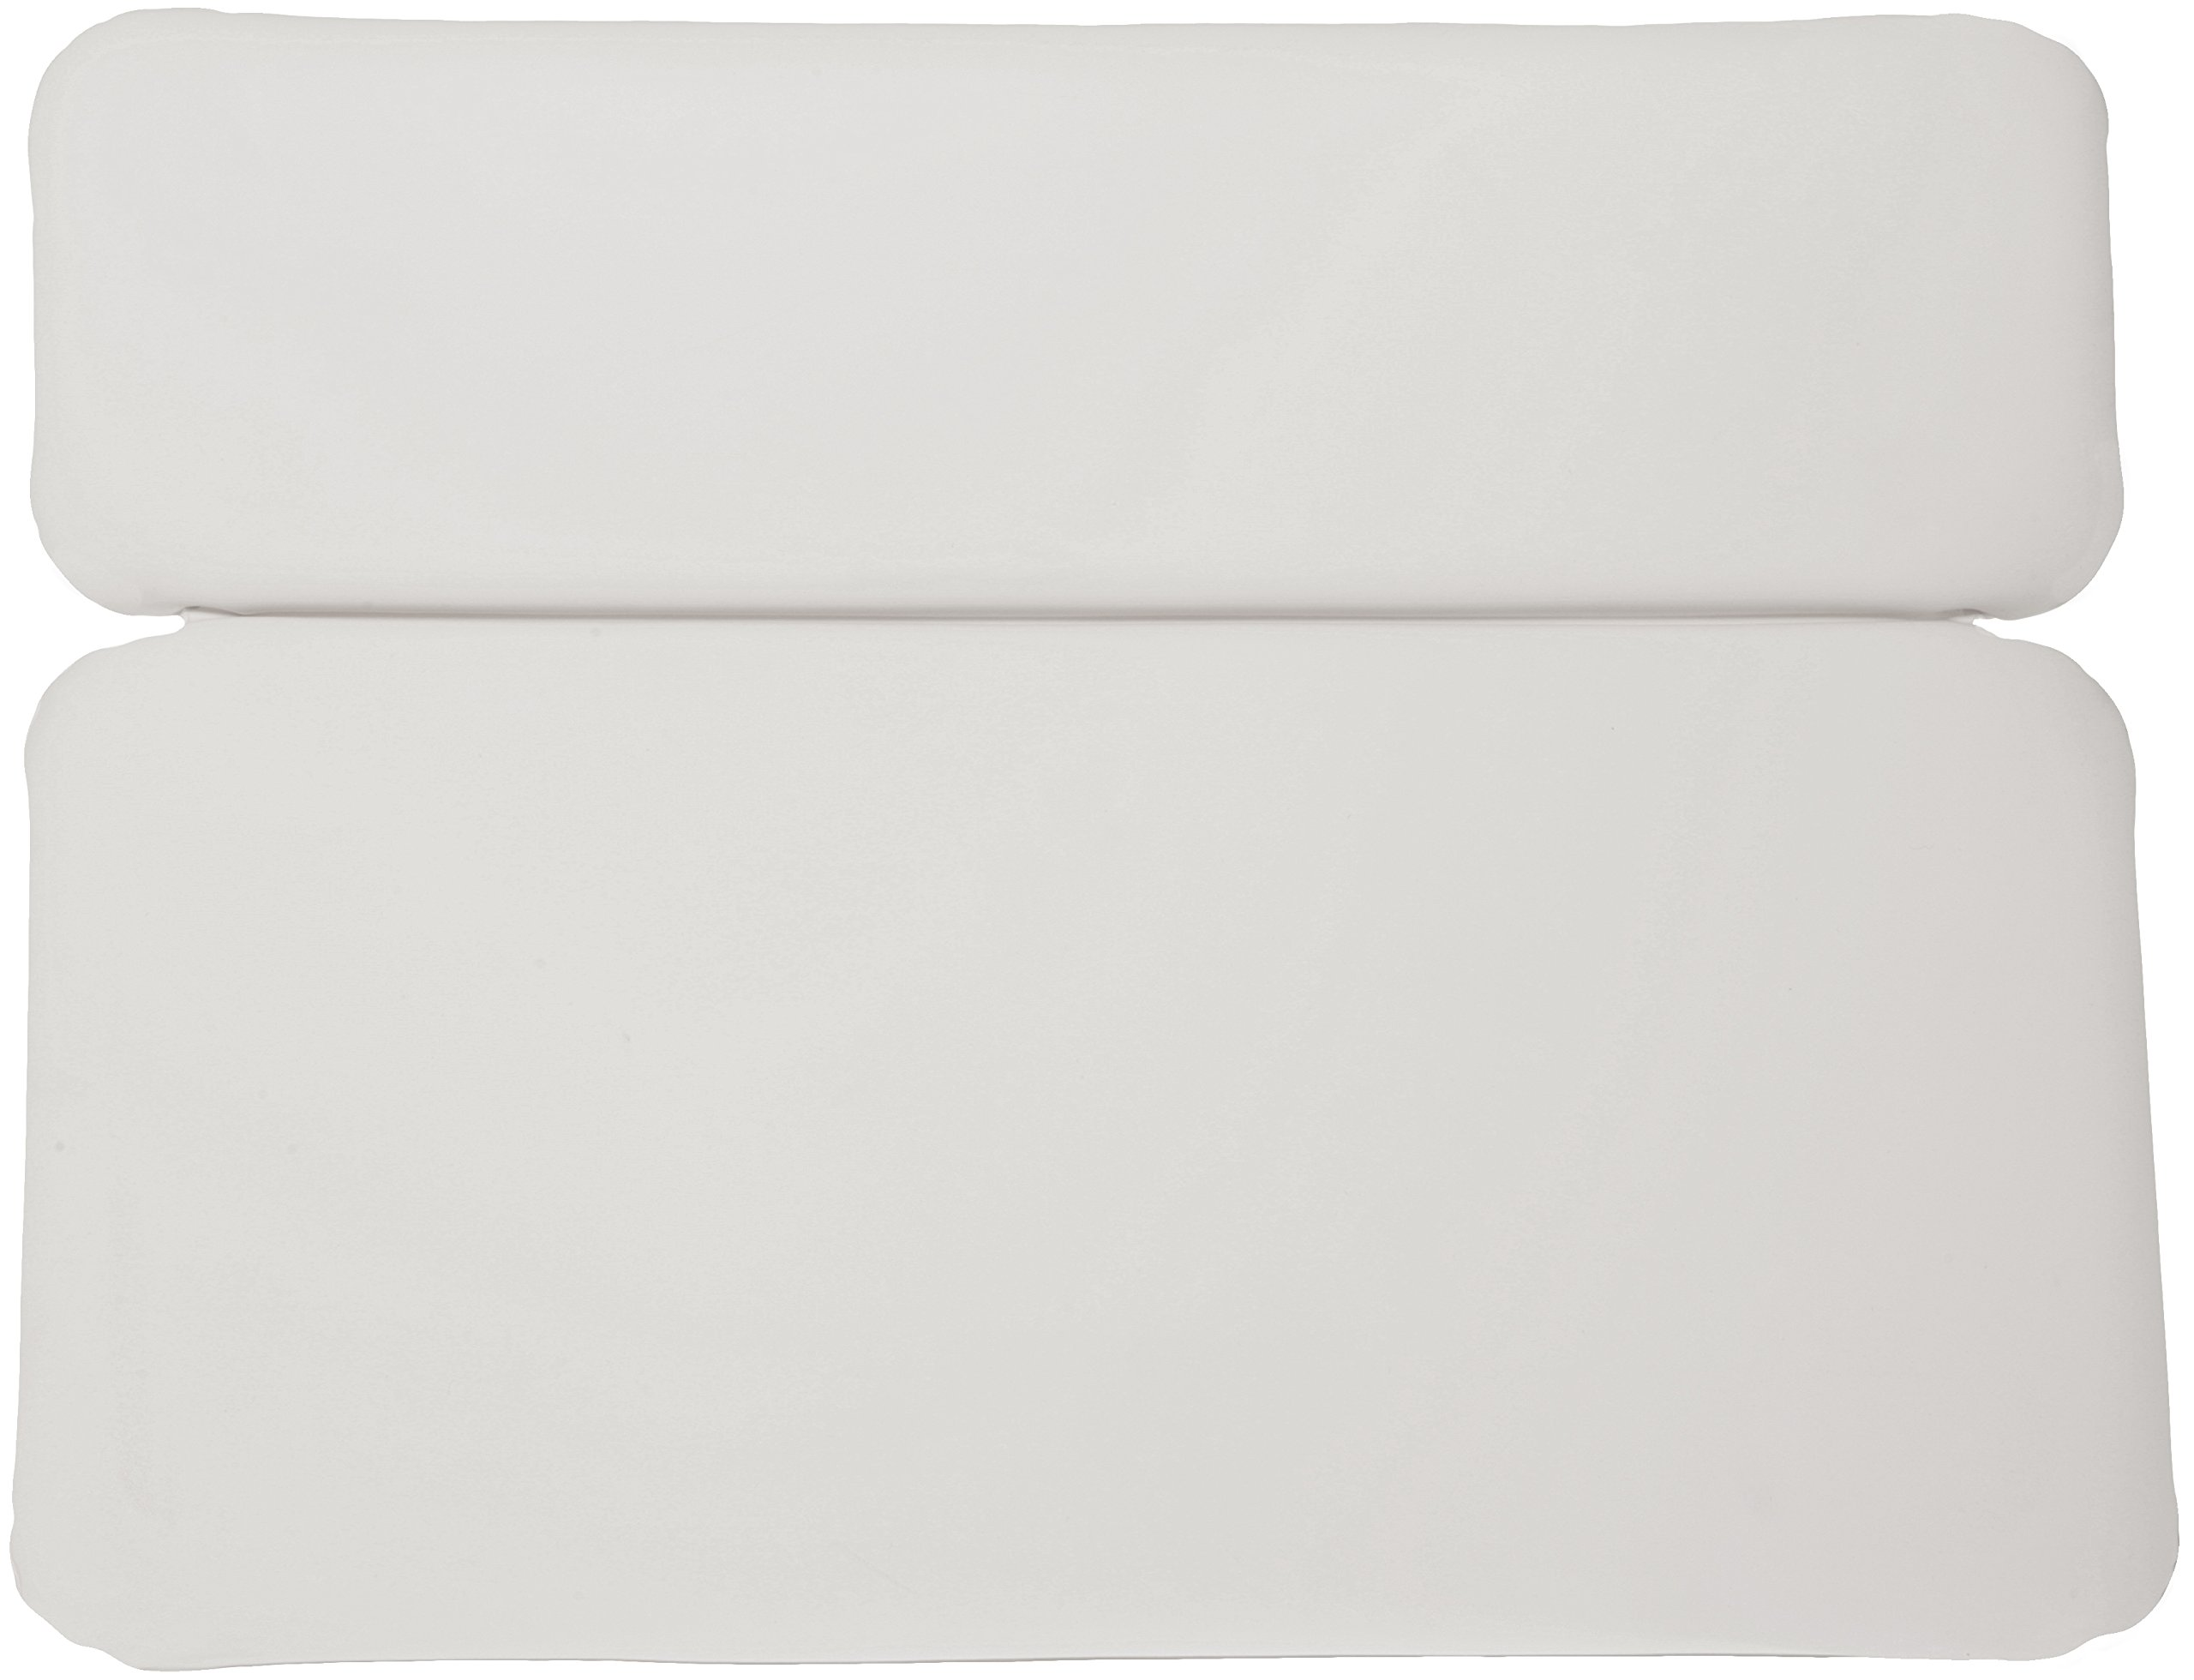 Luxury Comfort Large White Vinyl & Foam Relaxing Neck Spa Bath Pillow Hot Tub by Deluxe Comfort (Image #4)